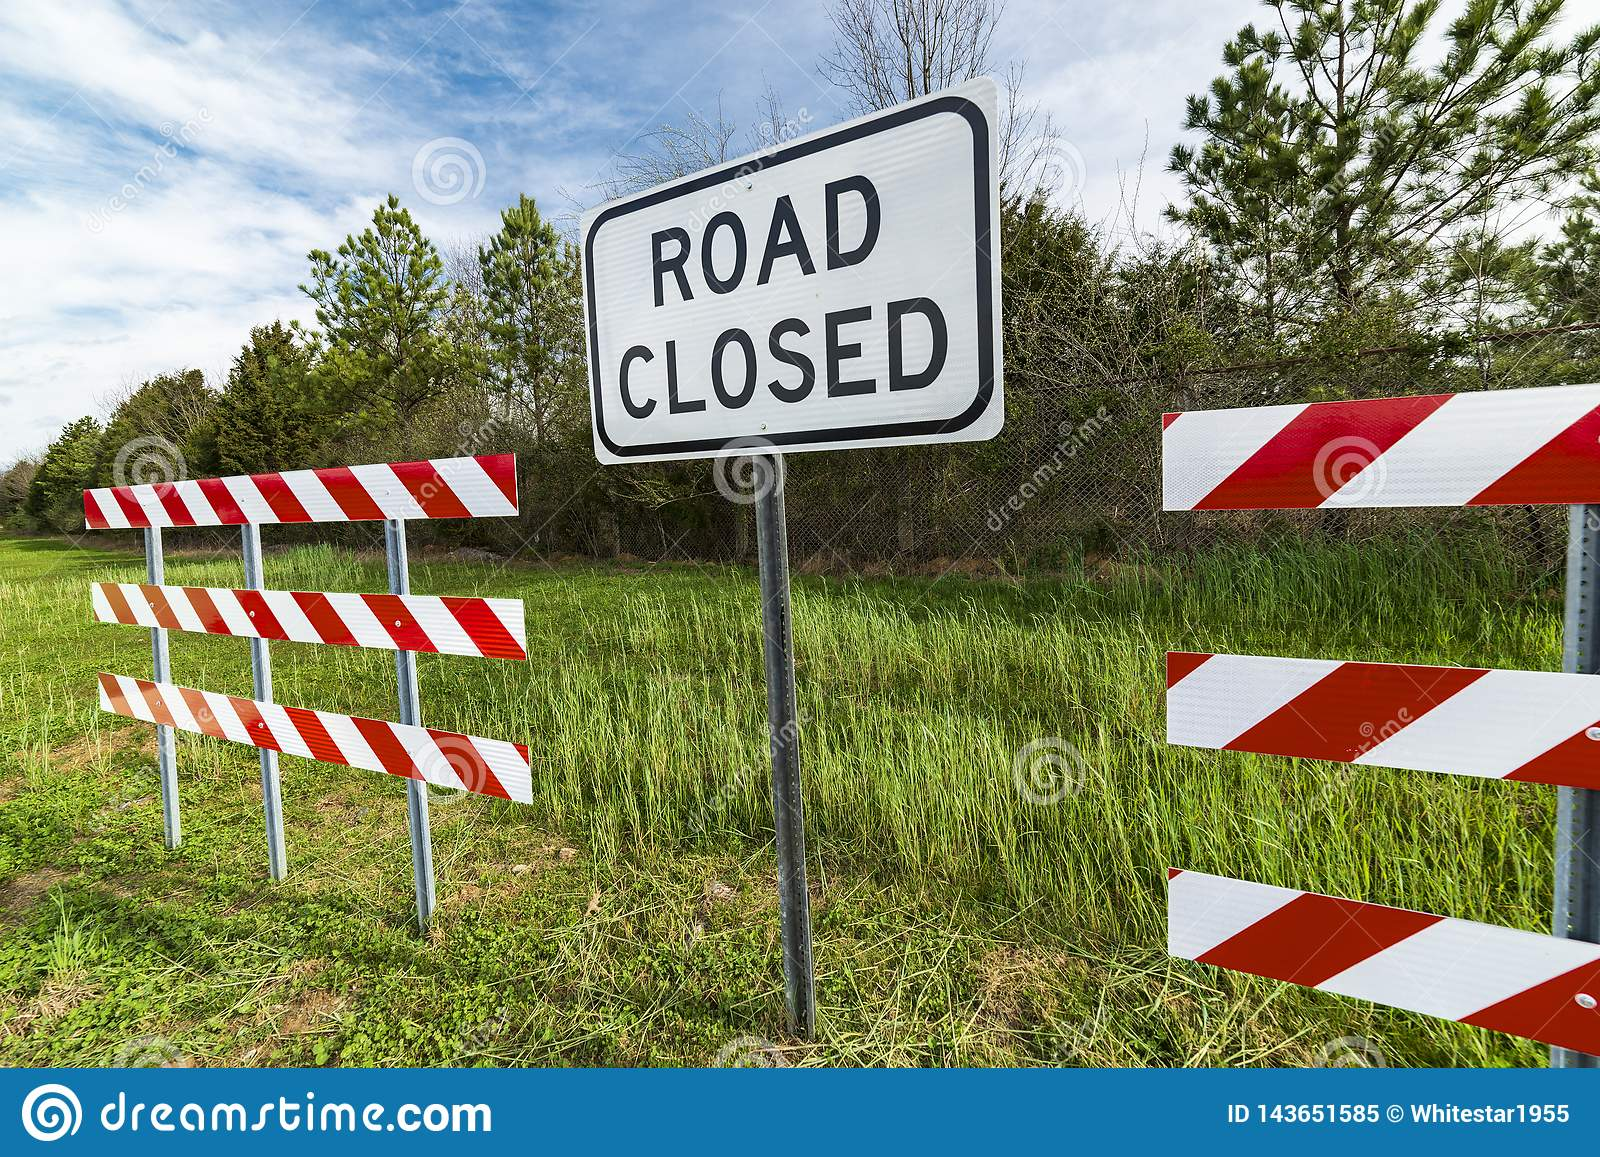 Barriers With Road Closed Sign Stock Image - Image of boundary